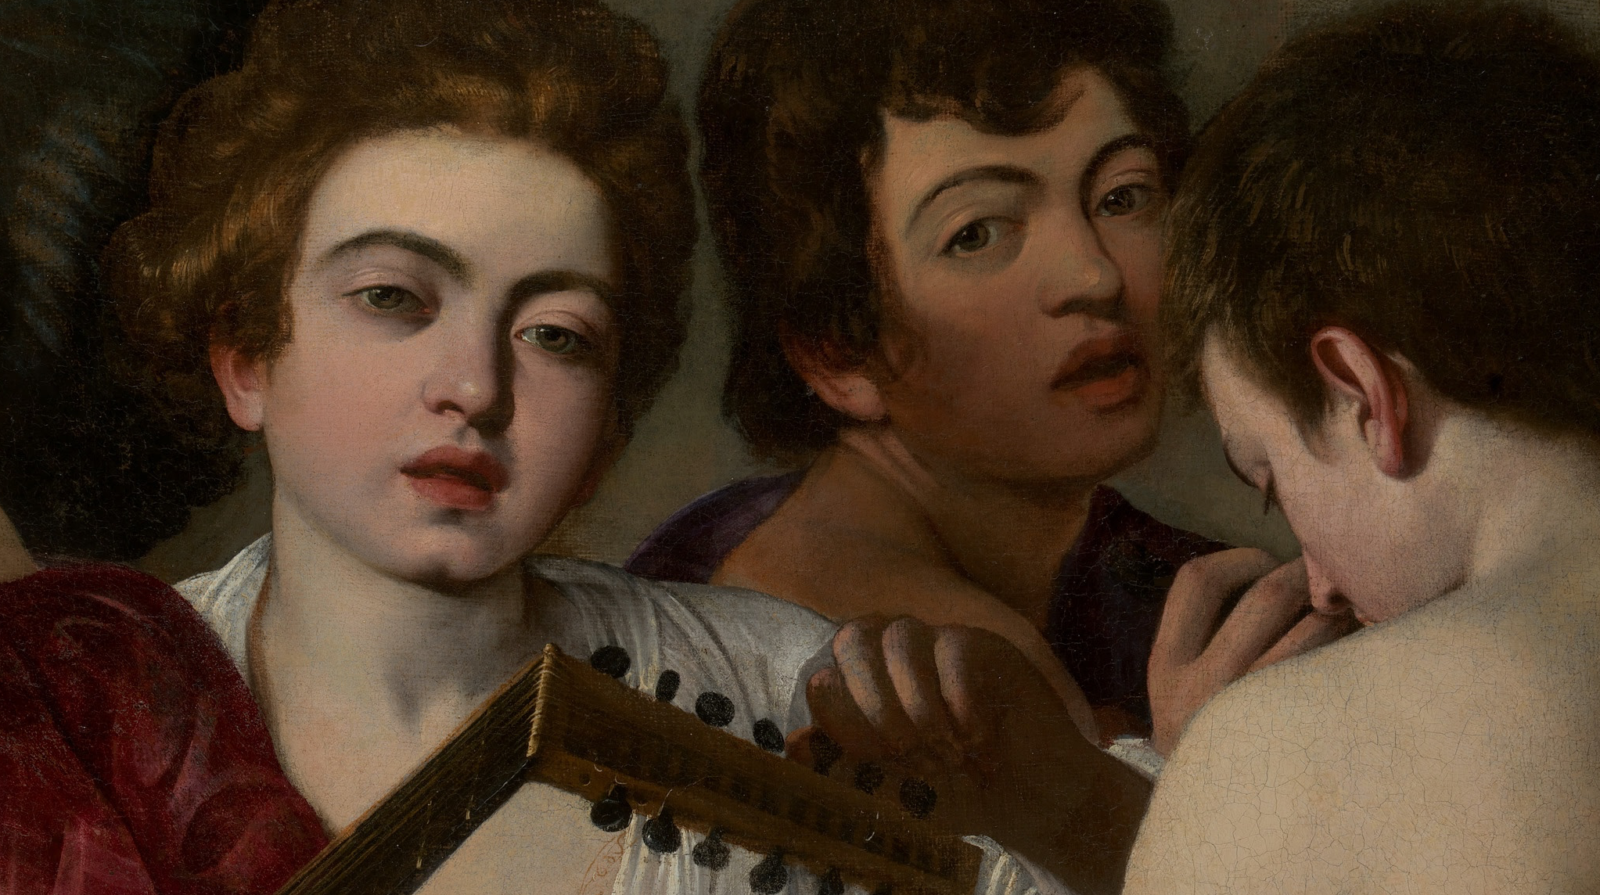 A detail of The Musicians, painted by Caravaggio.